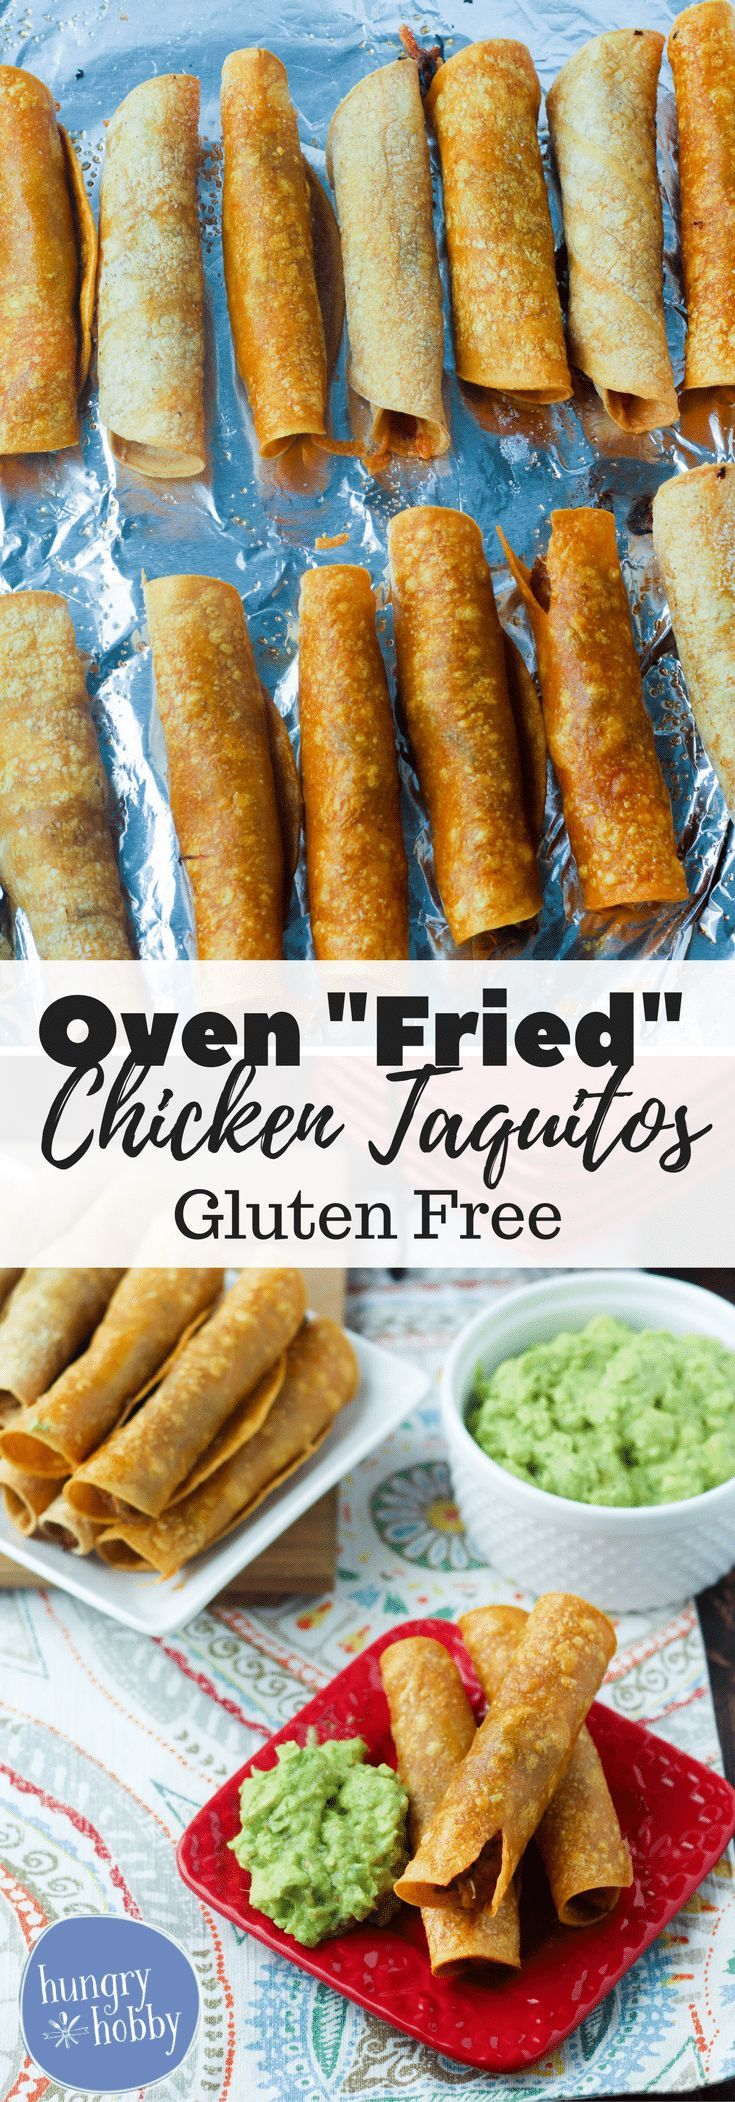 Oven Fried Chicken Taquitos Oven Fried Chicken Taquitos Gluten Free Recipes gluten free fried chicken